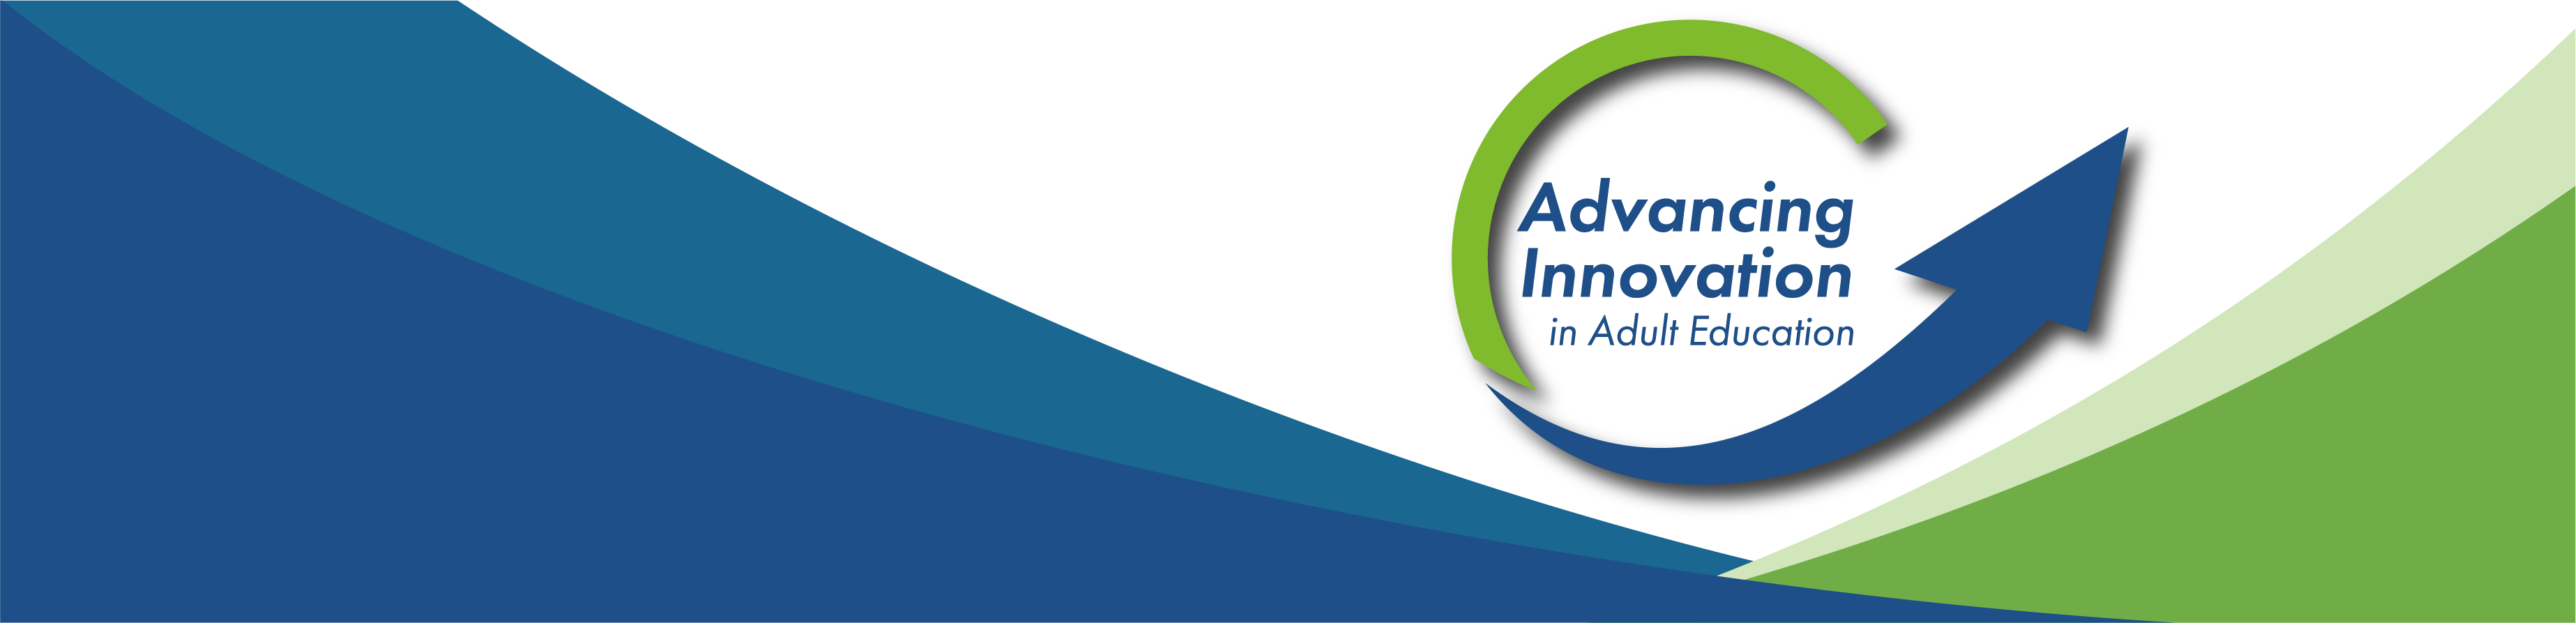 Advancing Innovation in Adult Education logo